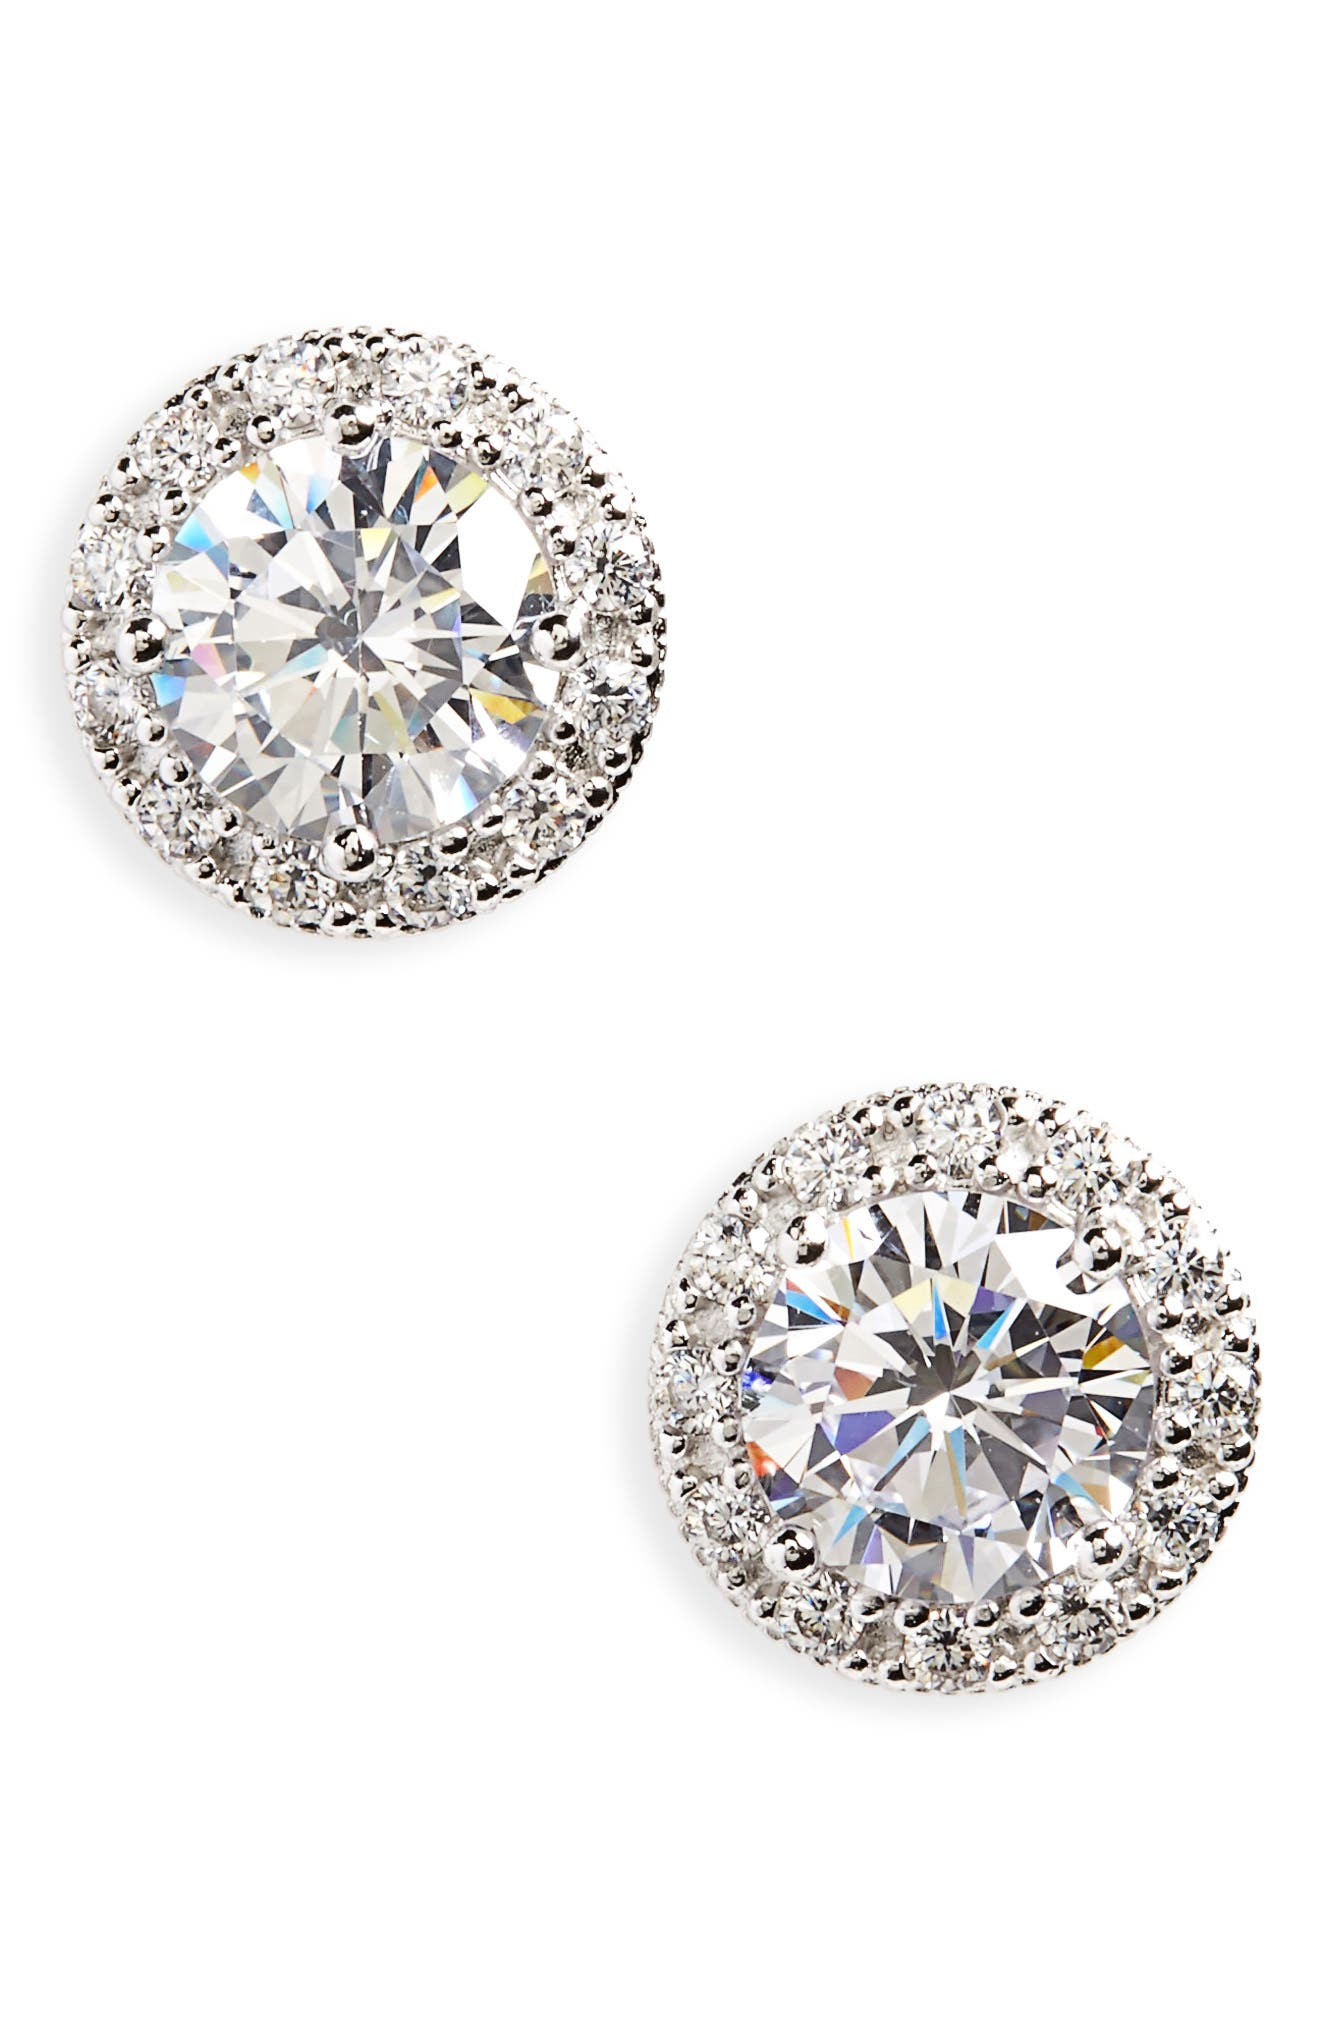 Main Image - Nordstrom Round 3.48ct tw Cubic Zirconia Stud Earrings